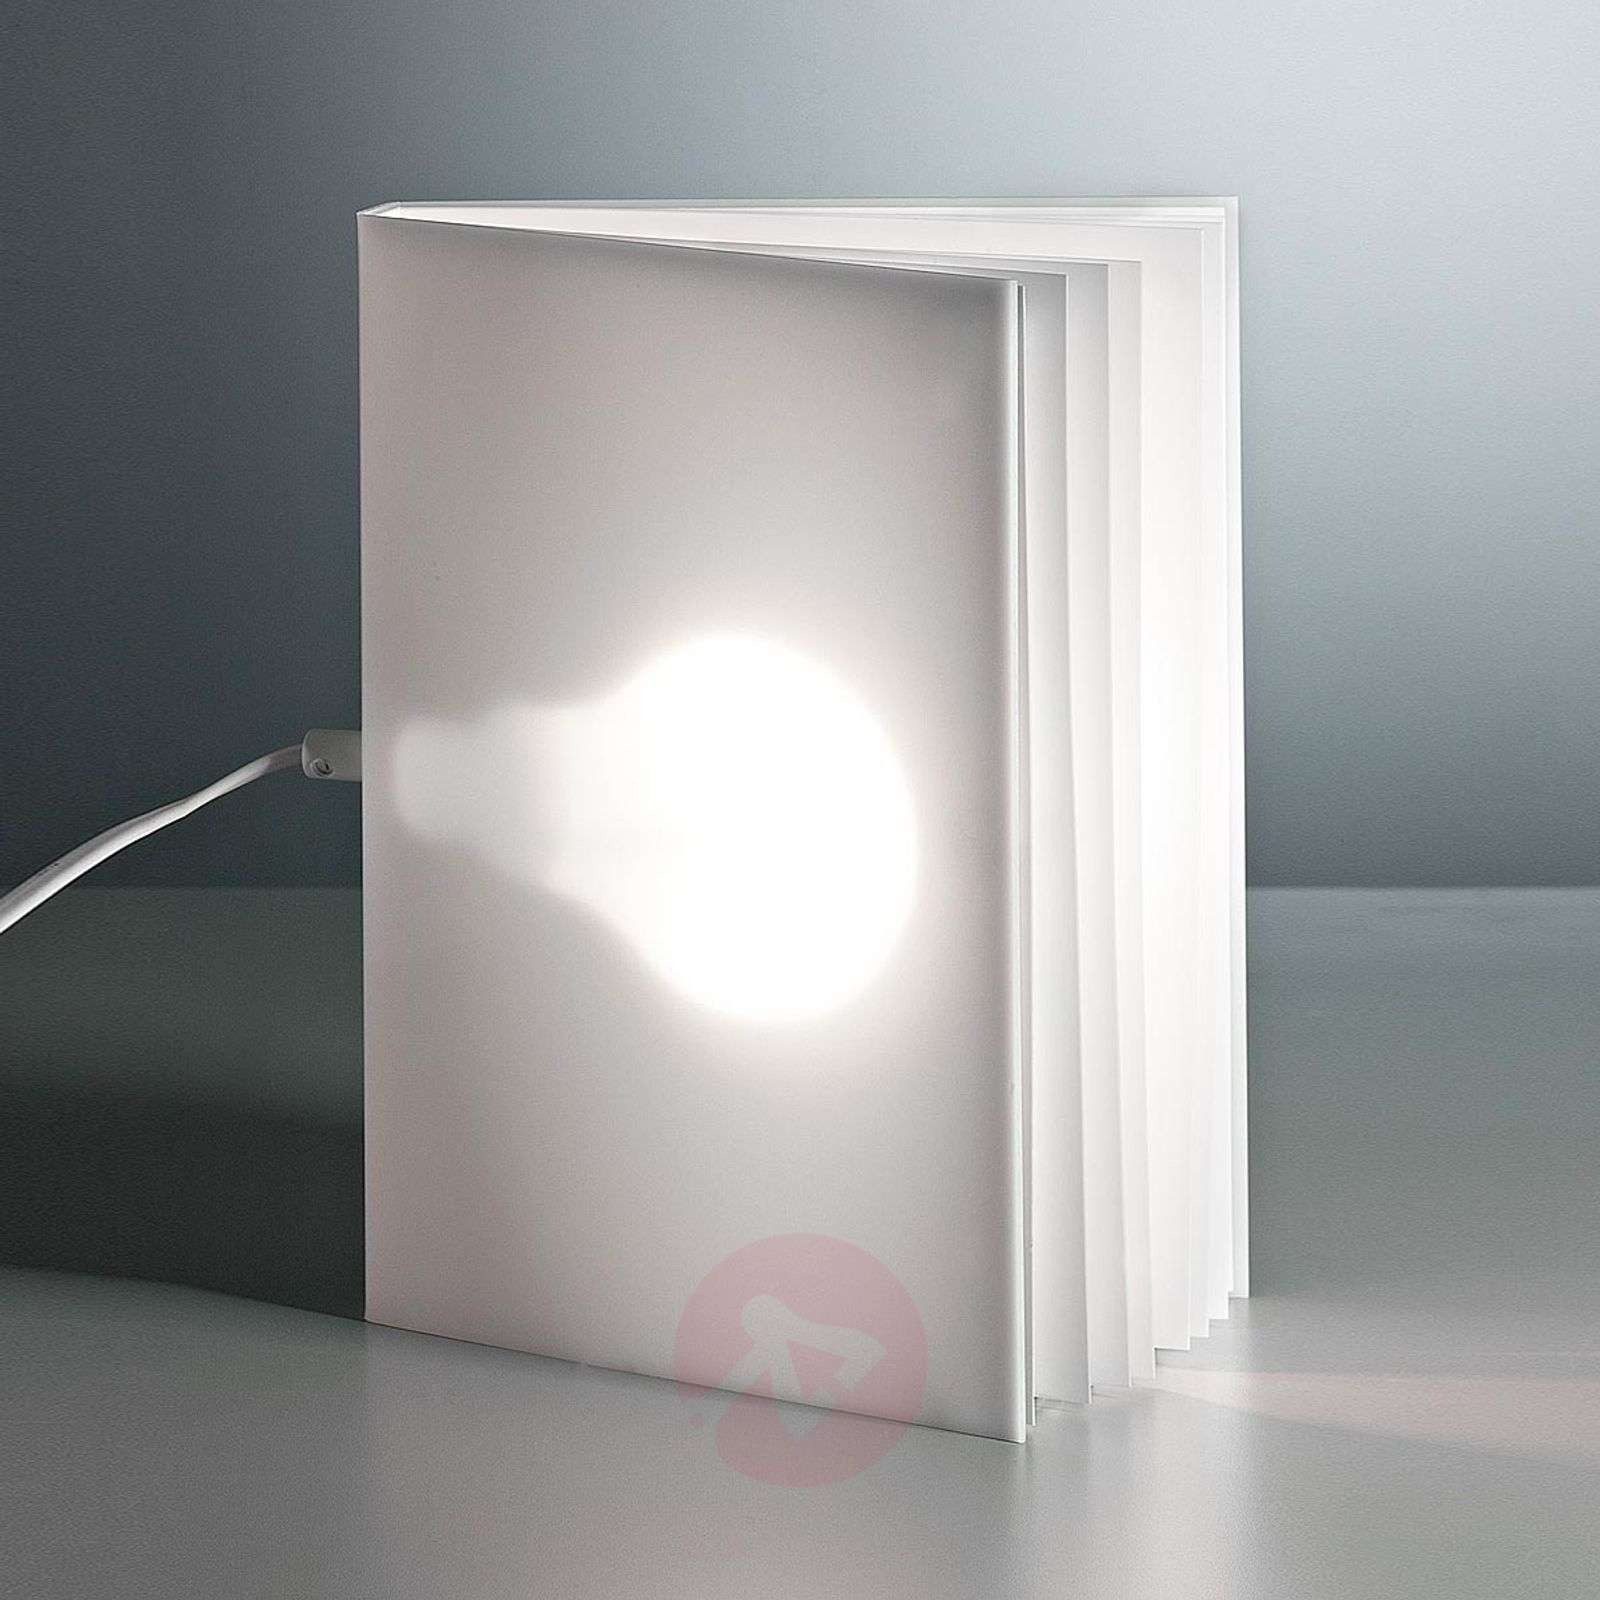 Tecnolumen BookLight table lamp by Vincenz Warnke-9030084-01